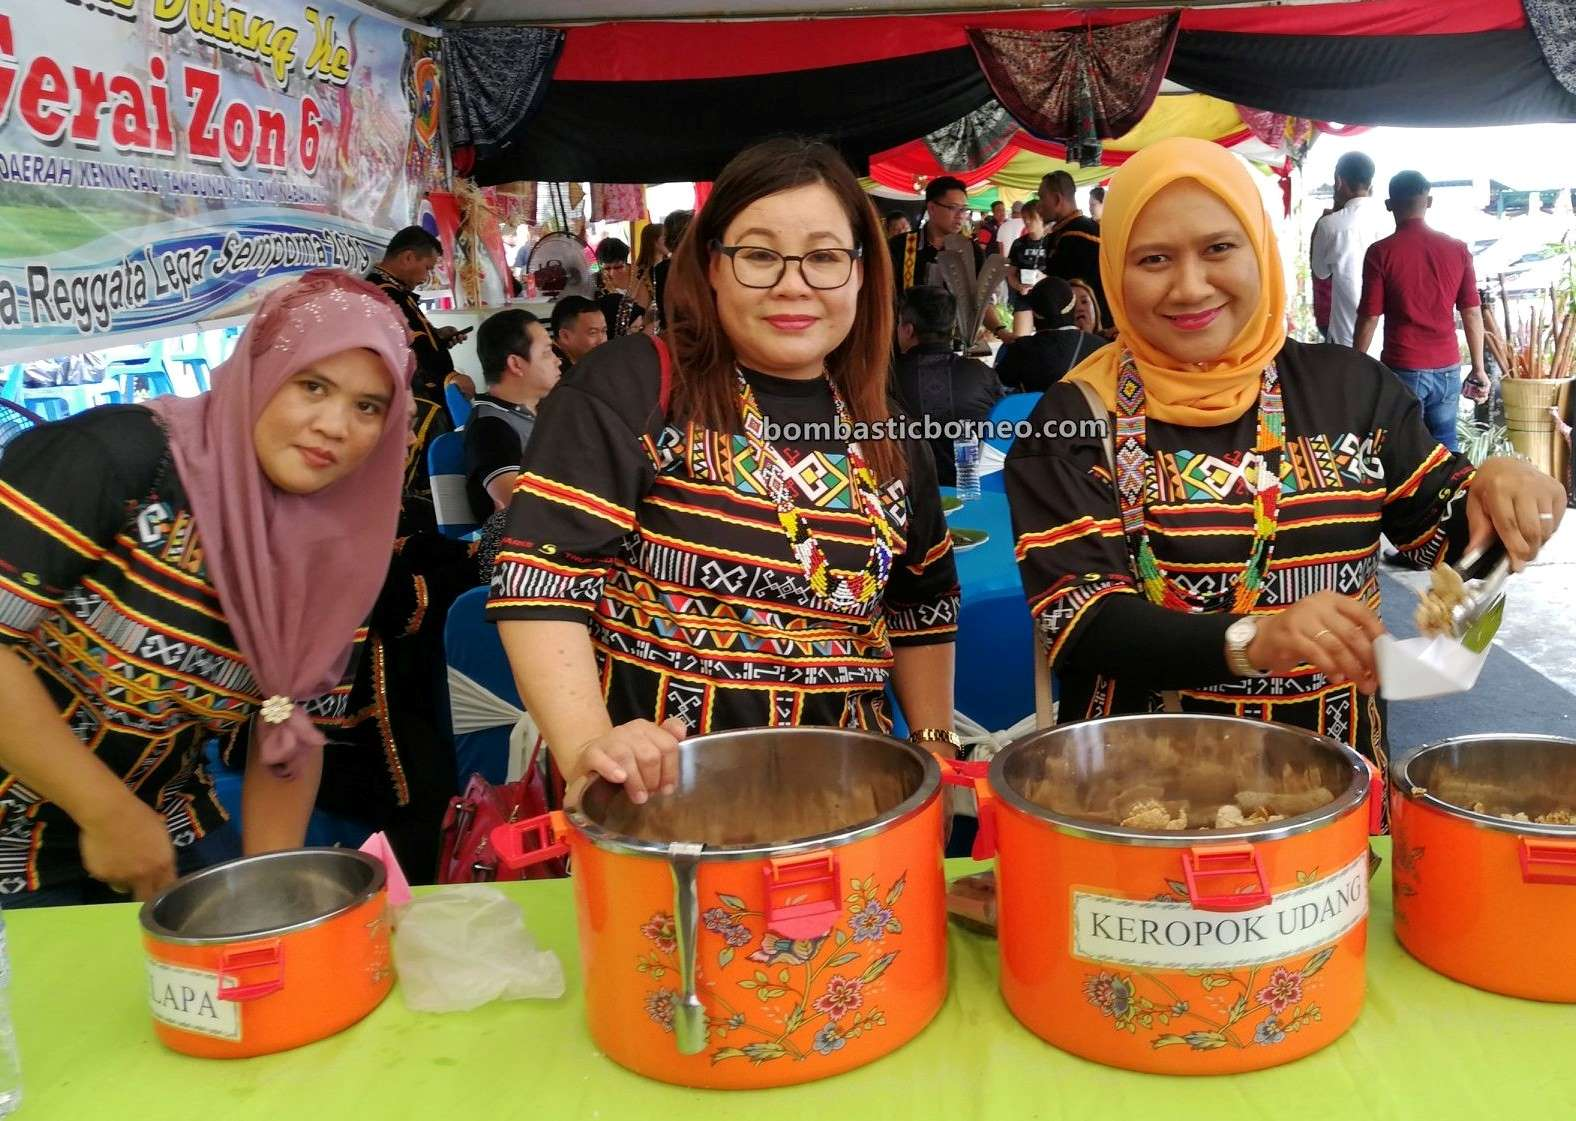 ethnic, budaya, culture, traditional, event, indigenous, Tawau, Semporna, Malaysia, Tourism, tourist attraction, Trans Borneo, 马来西亚沙巴, 仙本那彩船节